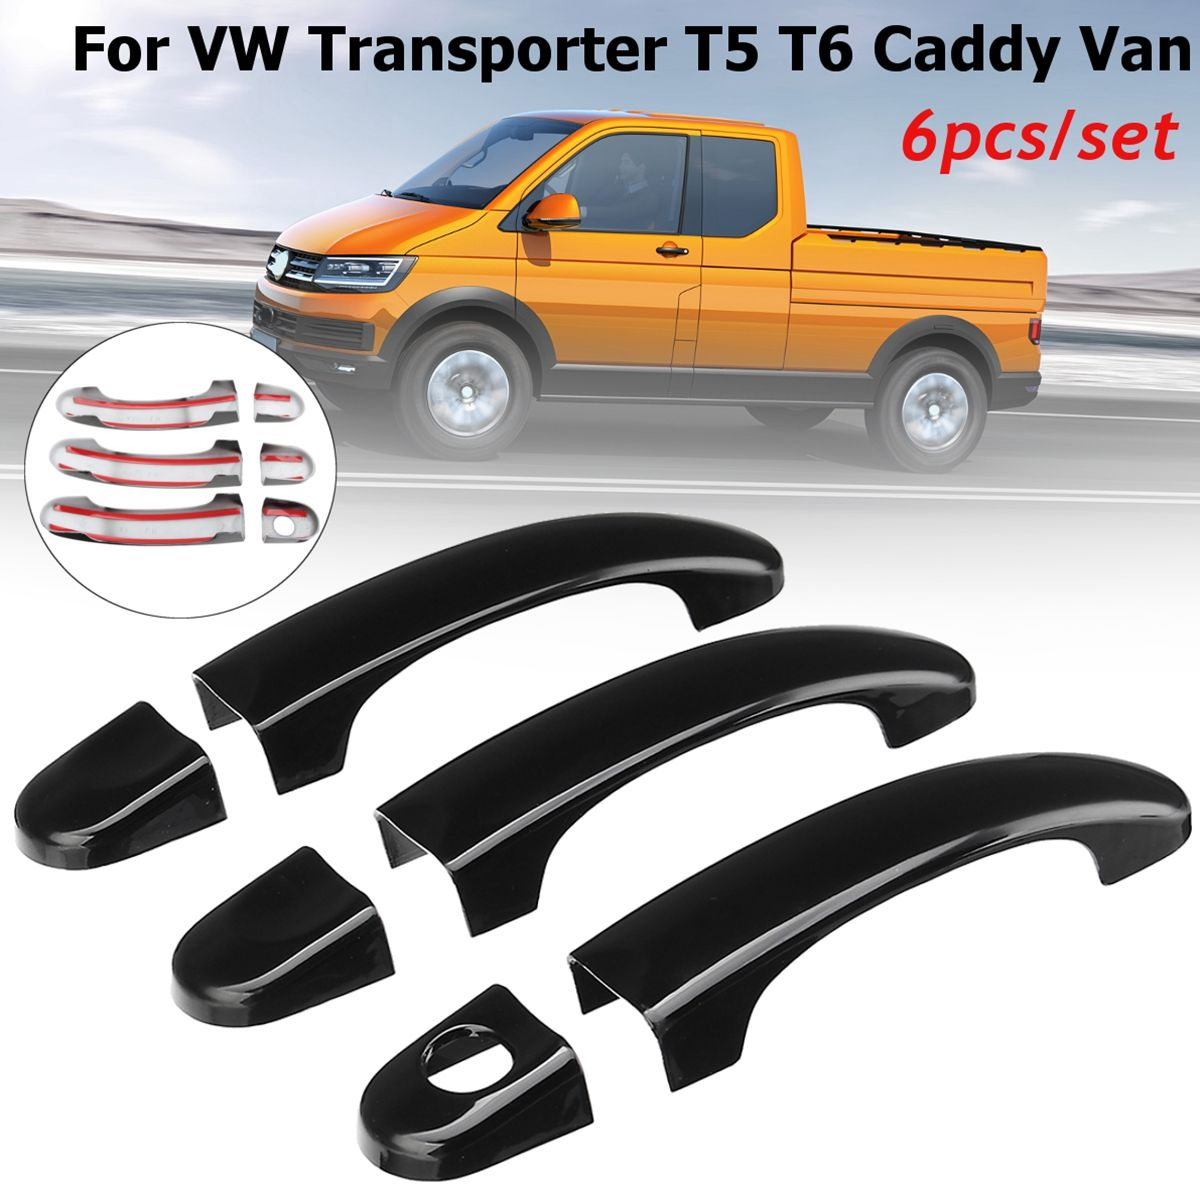 6pcs Set ABS Gloss Black Car Door Handle Covers For VW T5 TRANSPORTER 2003-2015 for T6 TRANSPORTER 2015-up for CADDY VAN 04-15